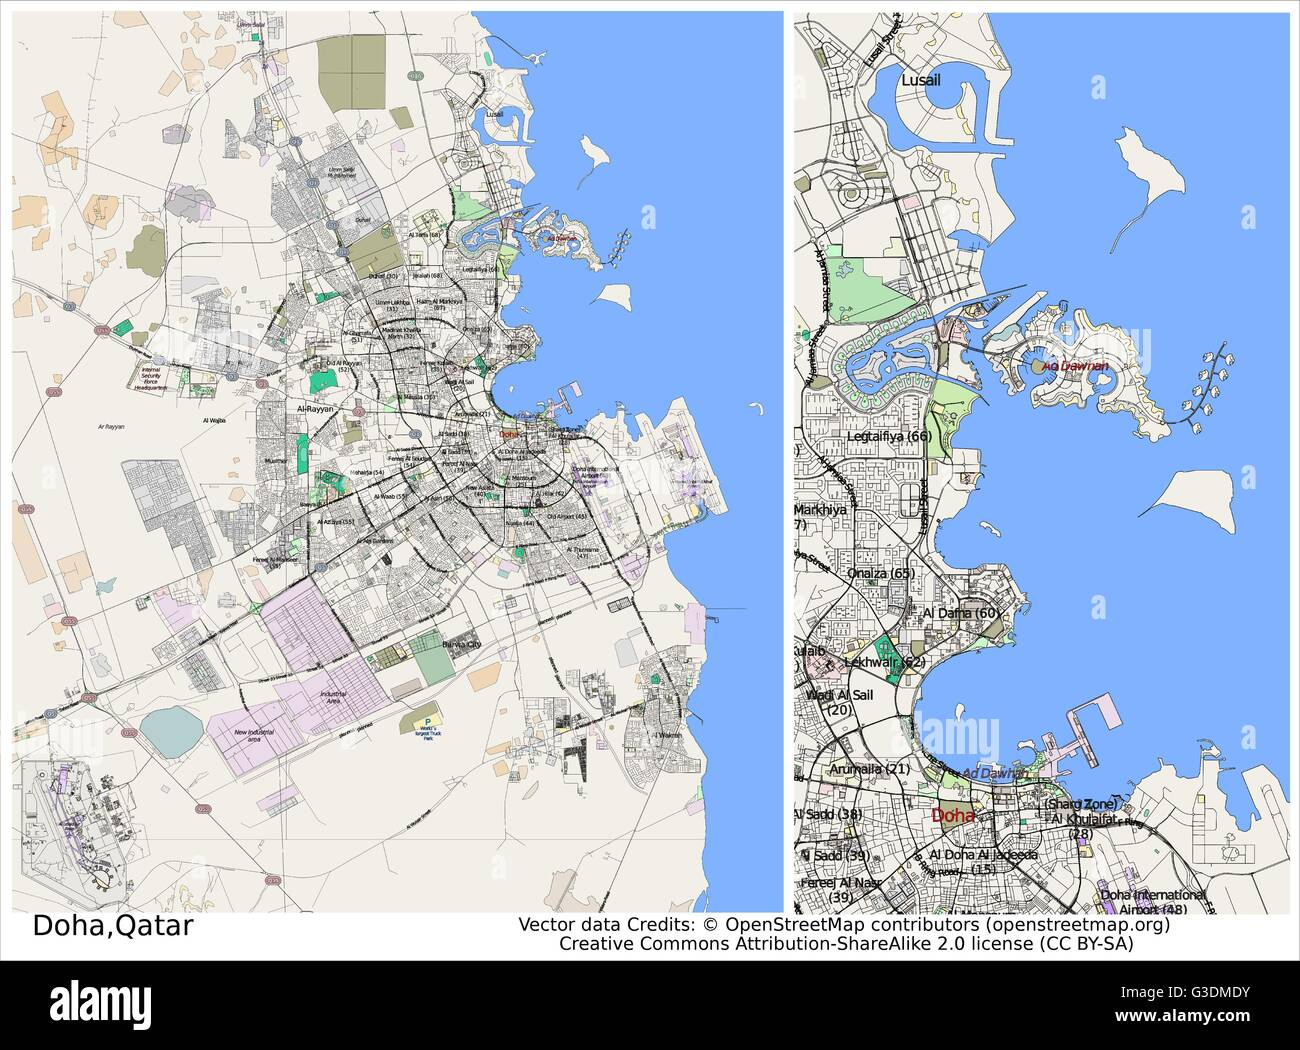 Doha Qatar city map Stock Vector Art & Illustration, Vector ... on tanzania map, united arab emirates map, al udeid air base, middle east map, dead sea map, bahrain map, doha corniche, qatar airways, dushanbe map, qatar map, riyadh map, sana'a map, al jazeera, ankara map, kuwait map, abu dhabi, education city, world map, abu dhabi map, manama map, dubai map, mosul map, medina map, kuwait city, doha international airport, damascus map, jerusalem map, souq waqif, baghdad map, aspire tower,